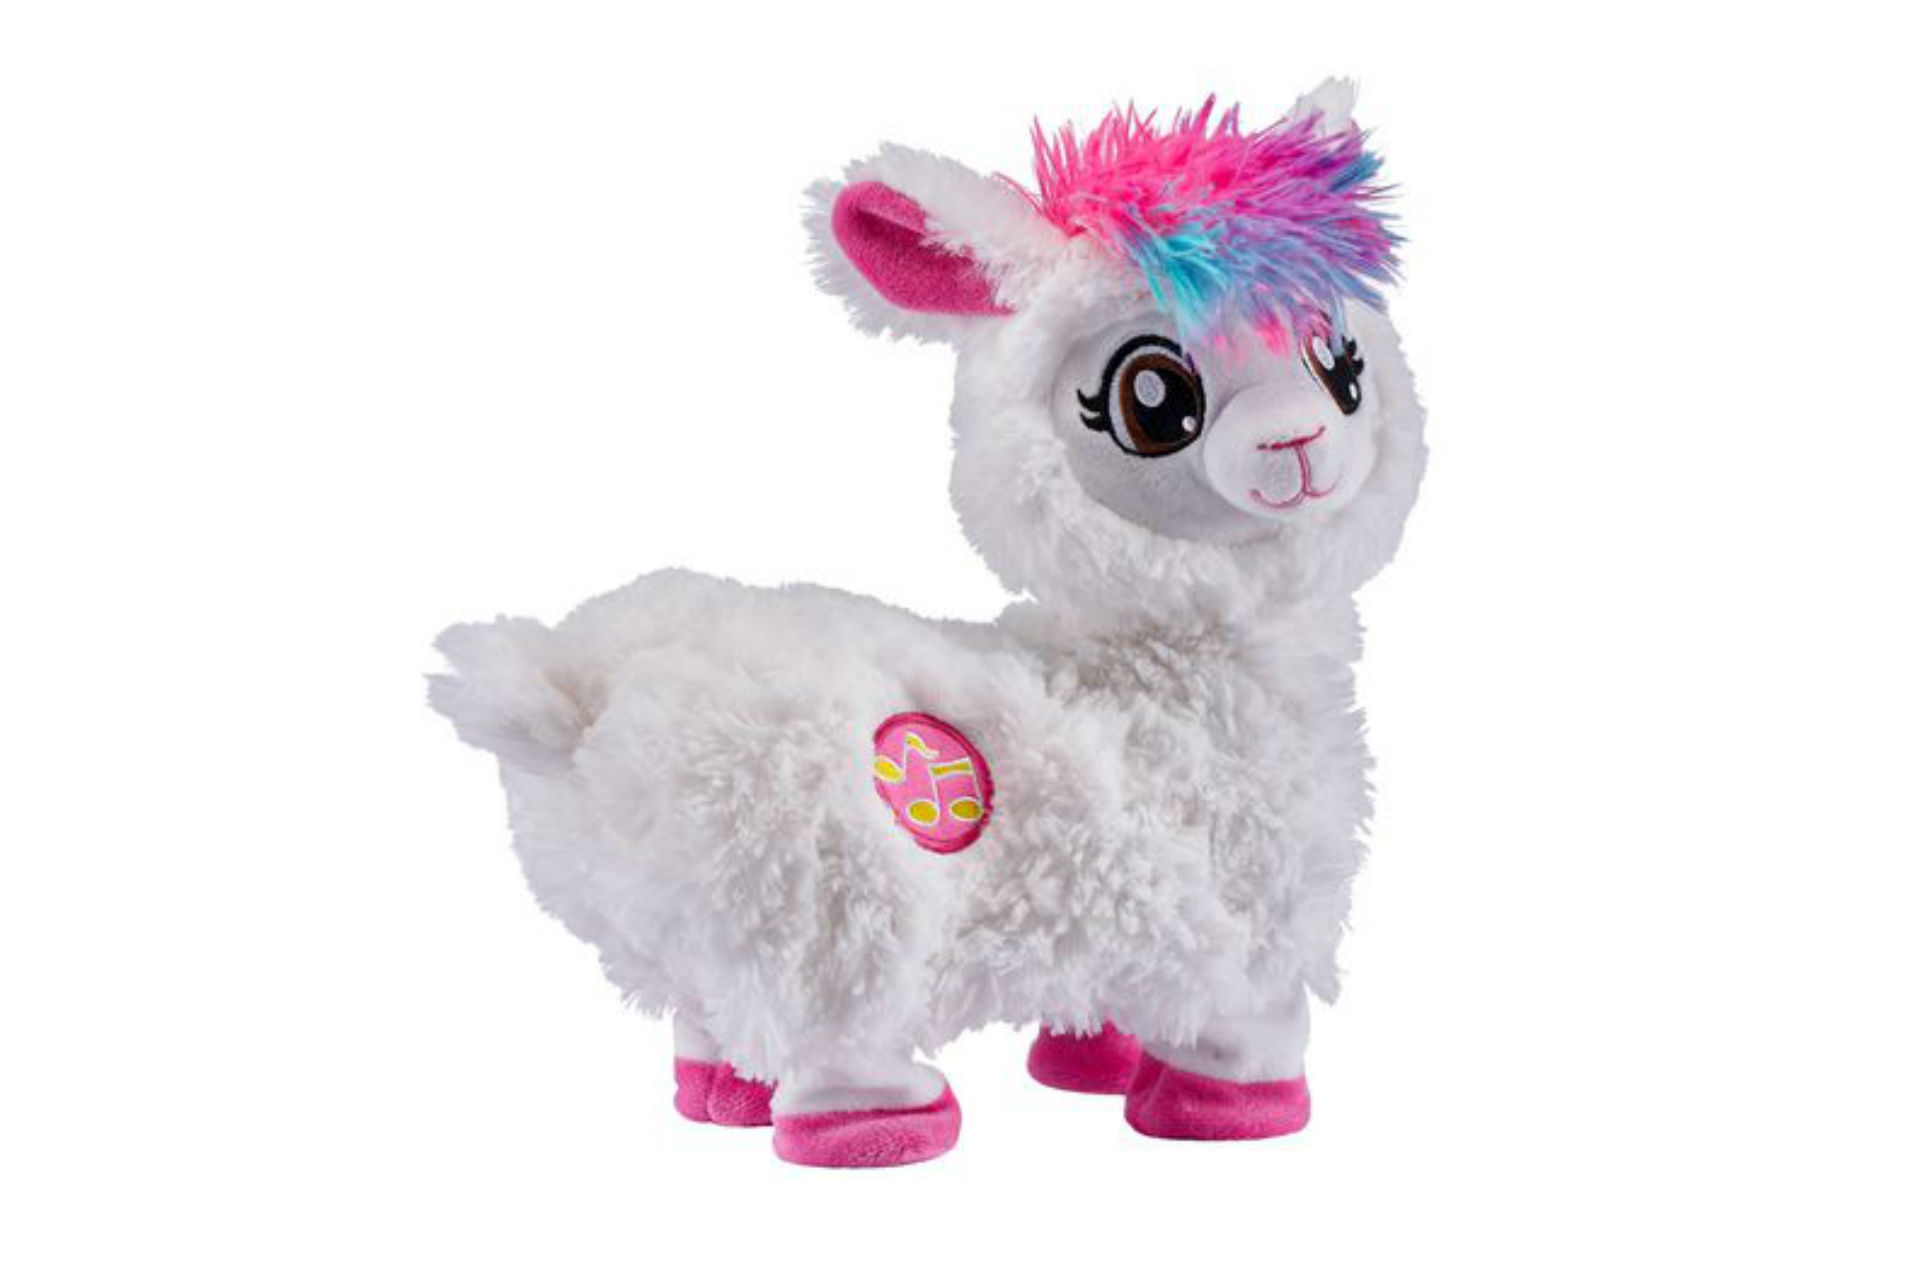 toy llama with colourful hair